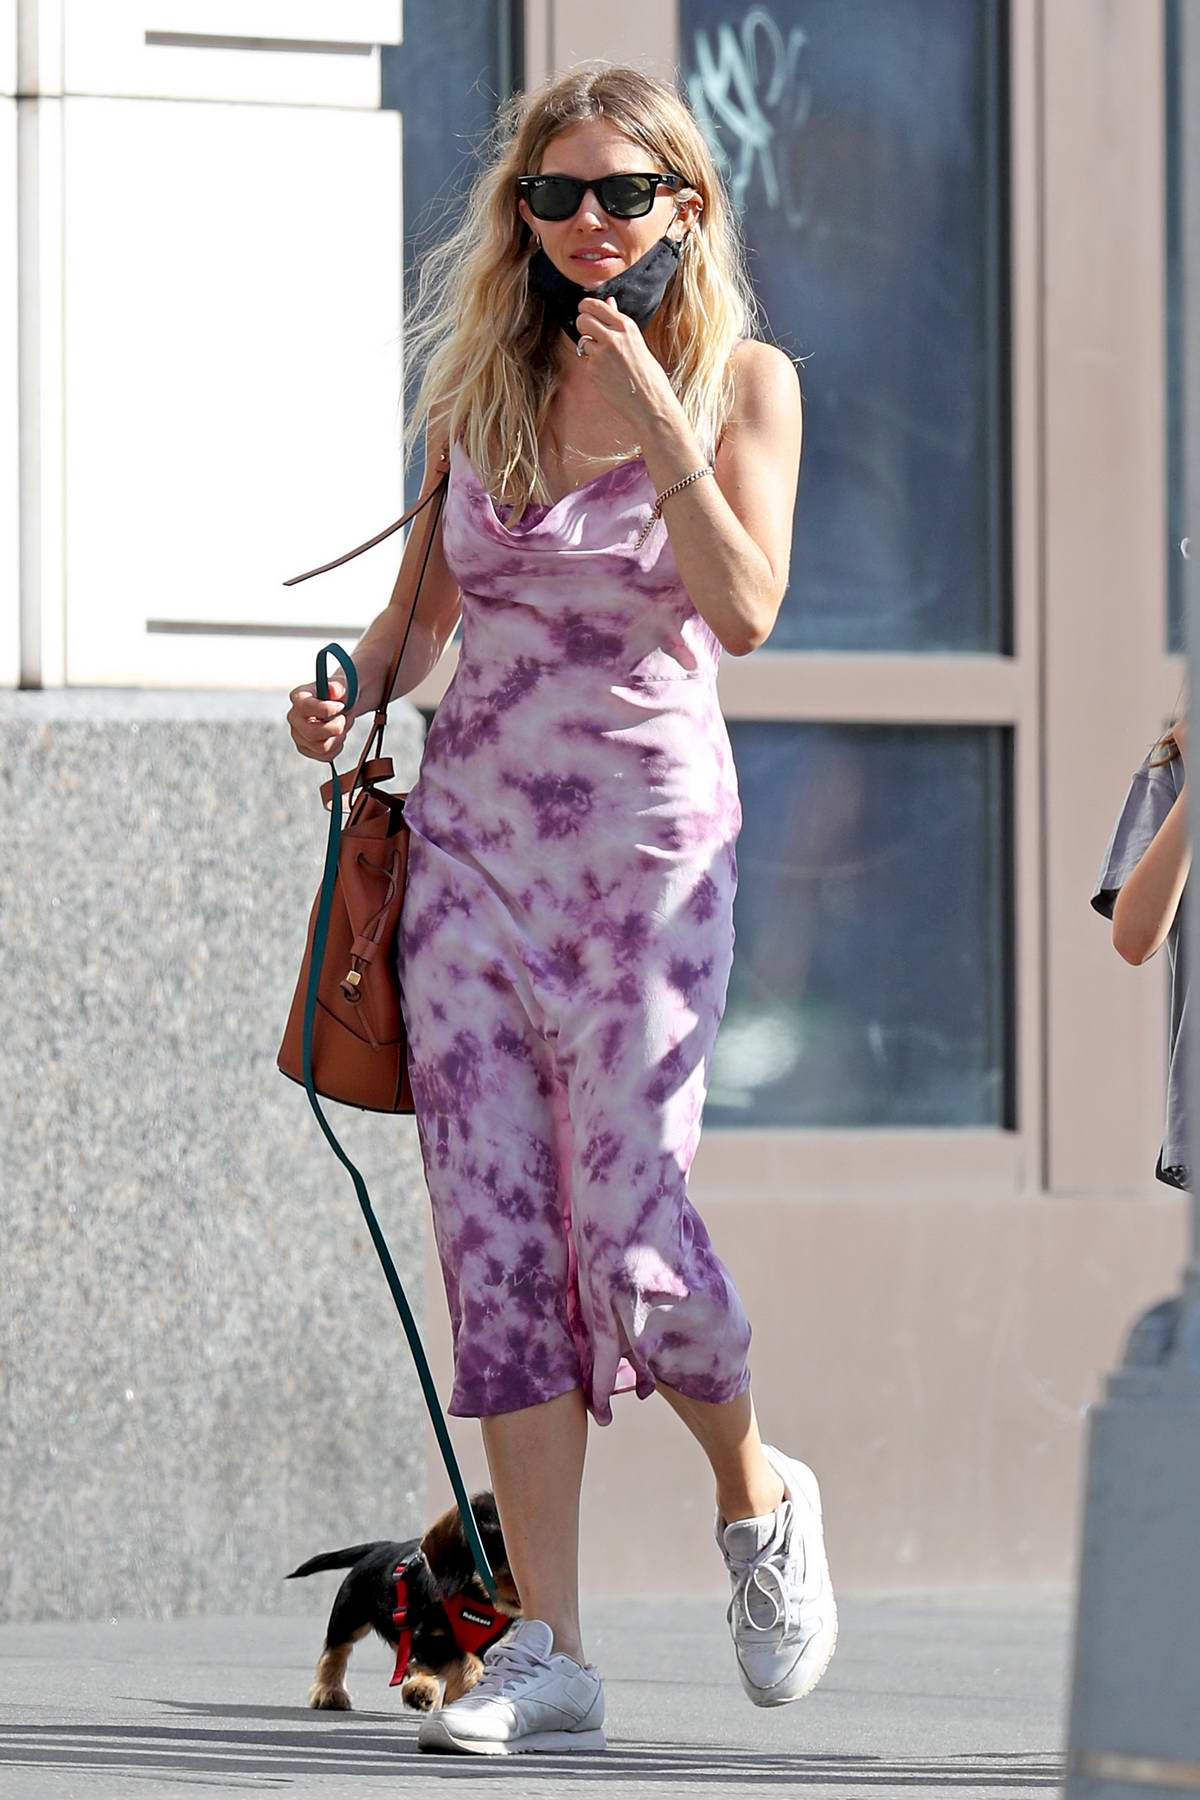 Sienna Miller wears a tie-dye dress while out with her daughter and boyfriend Lucas Zwirner in New York City